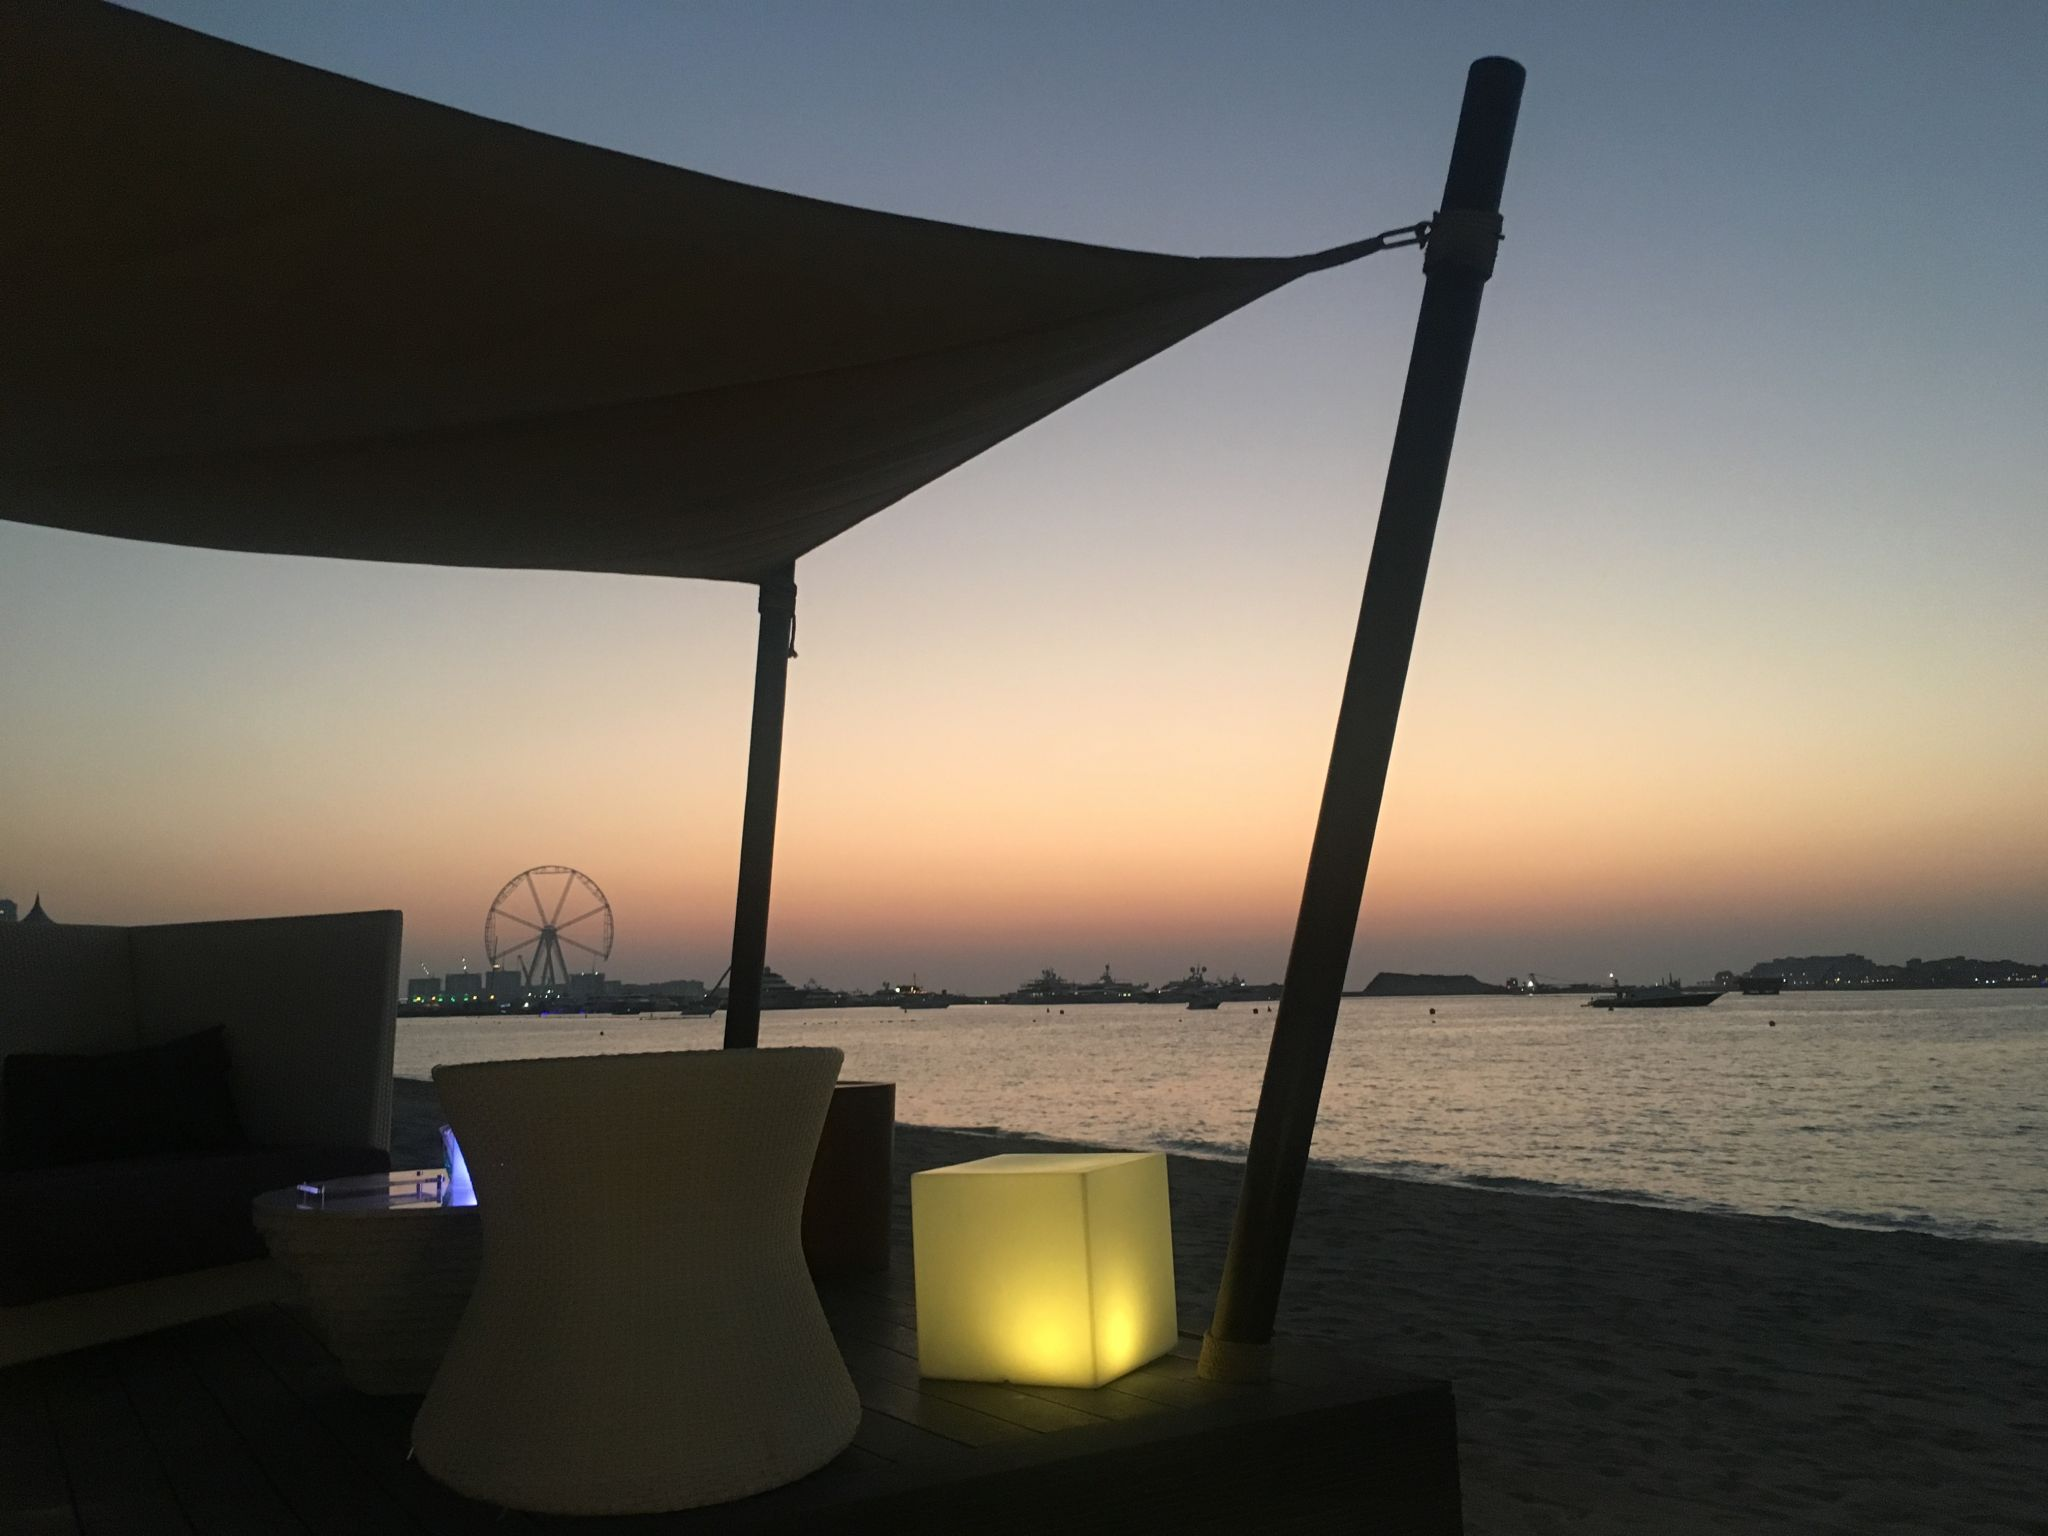 Palm-Views-Jetty-Lounge-Dubai-2